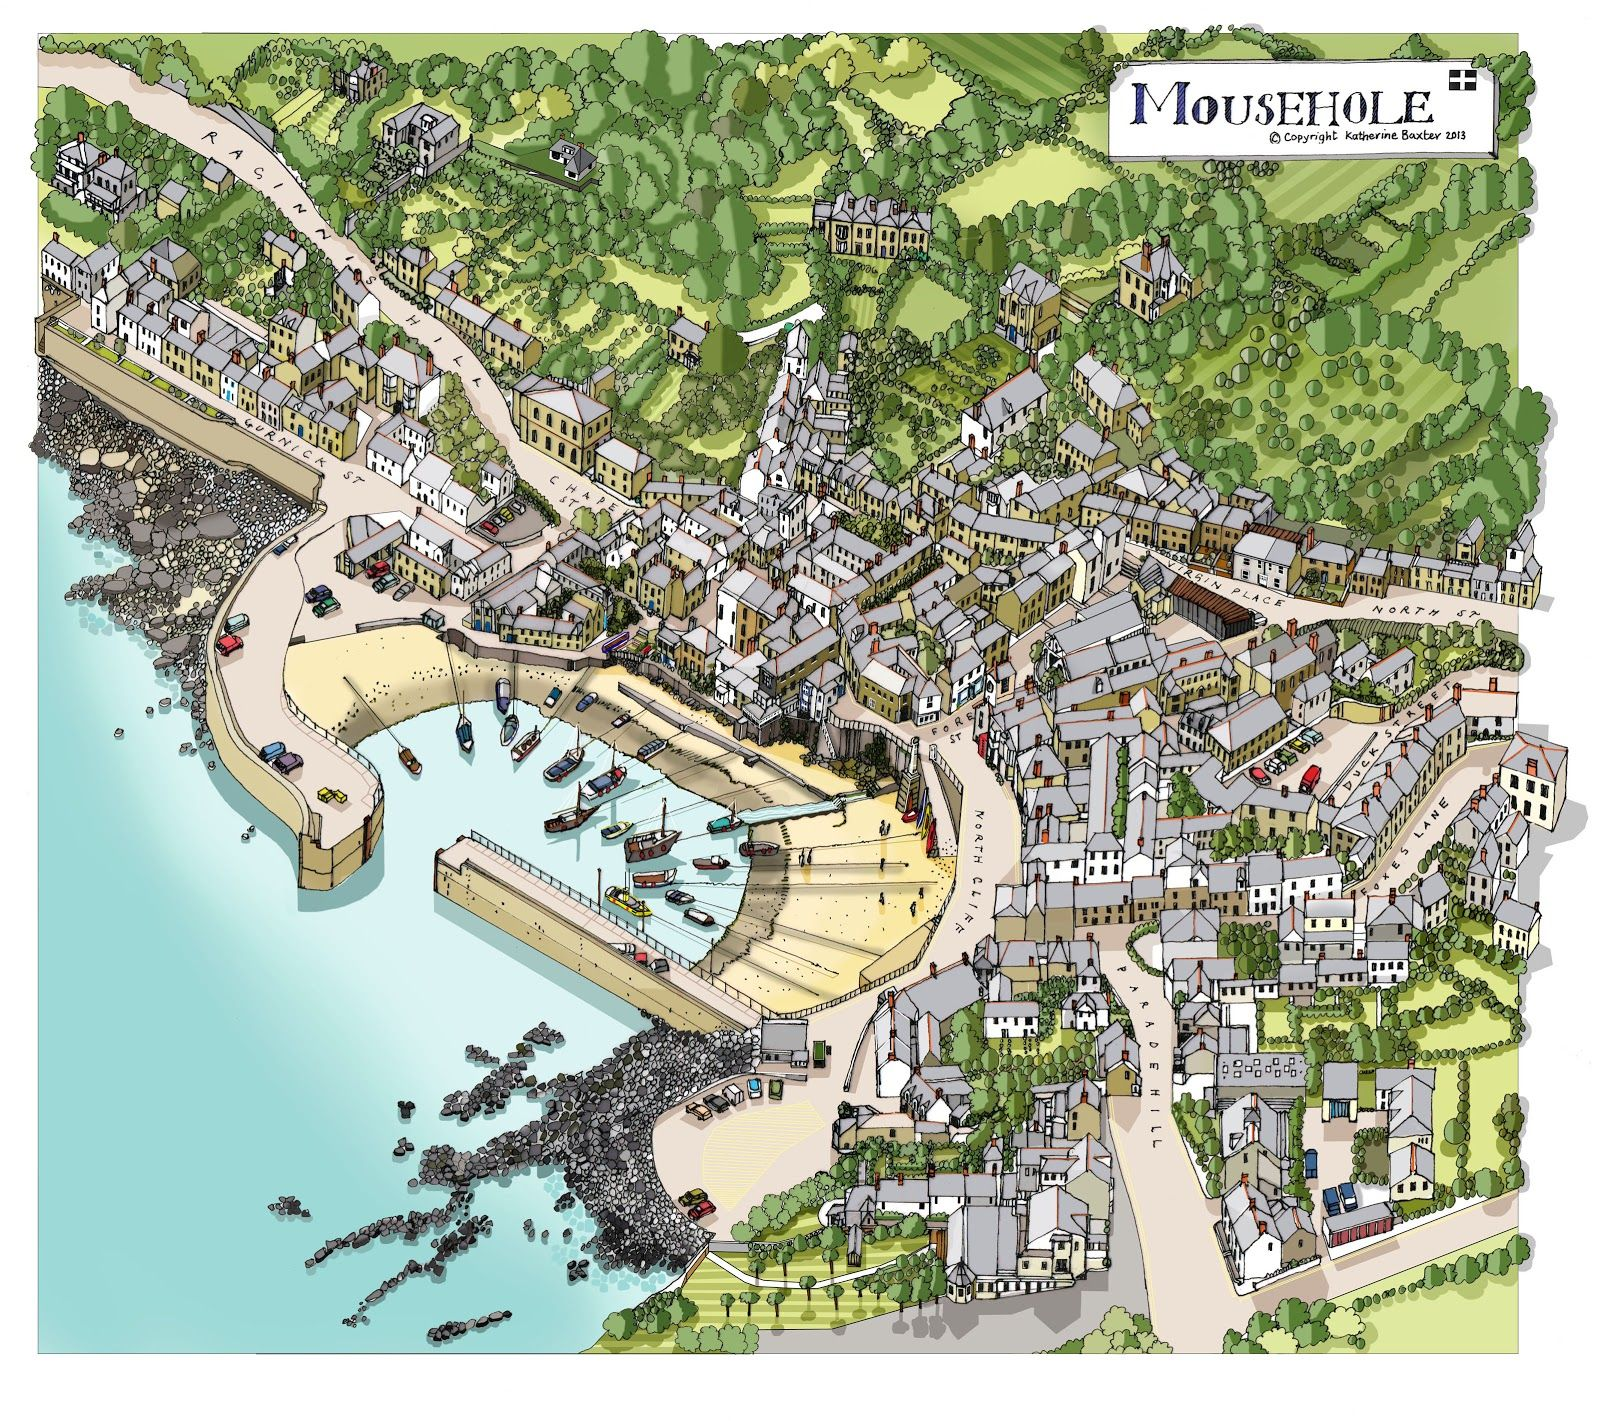 Pictorial map of Mousehole – a small Cornish town with a very